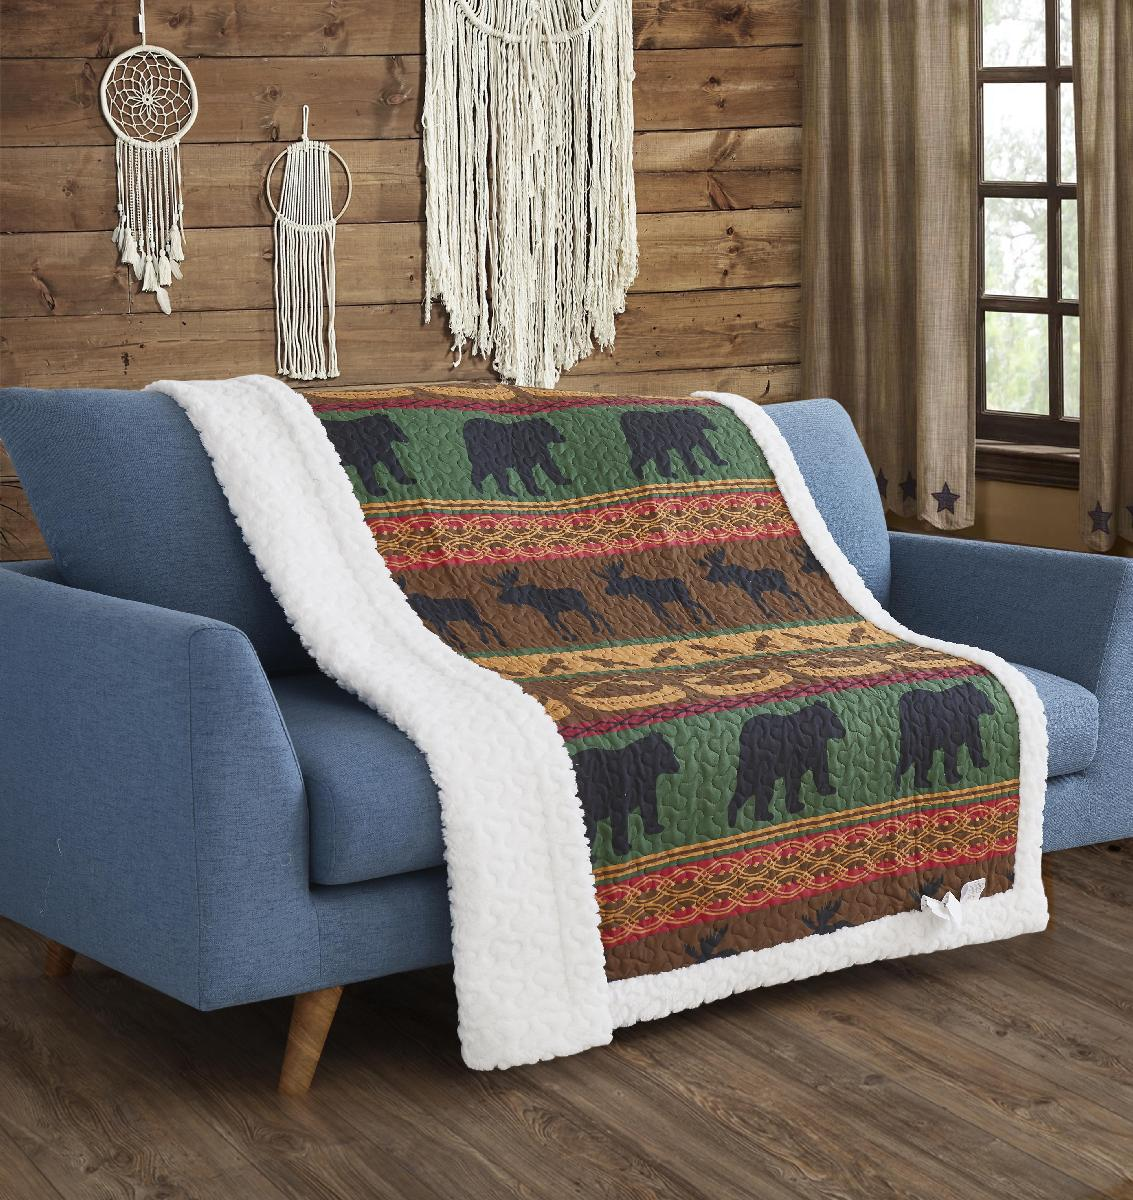 Lodge Preserve Primitive Quilted Sherpa Throw